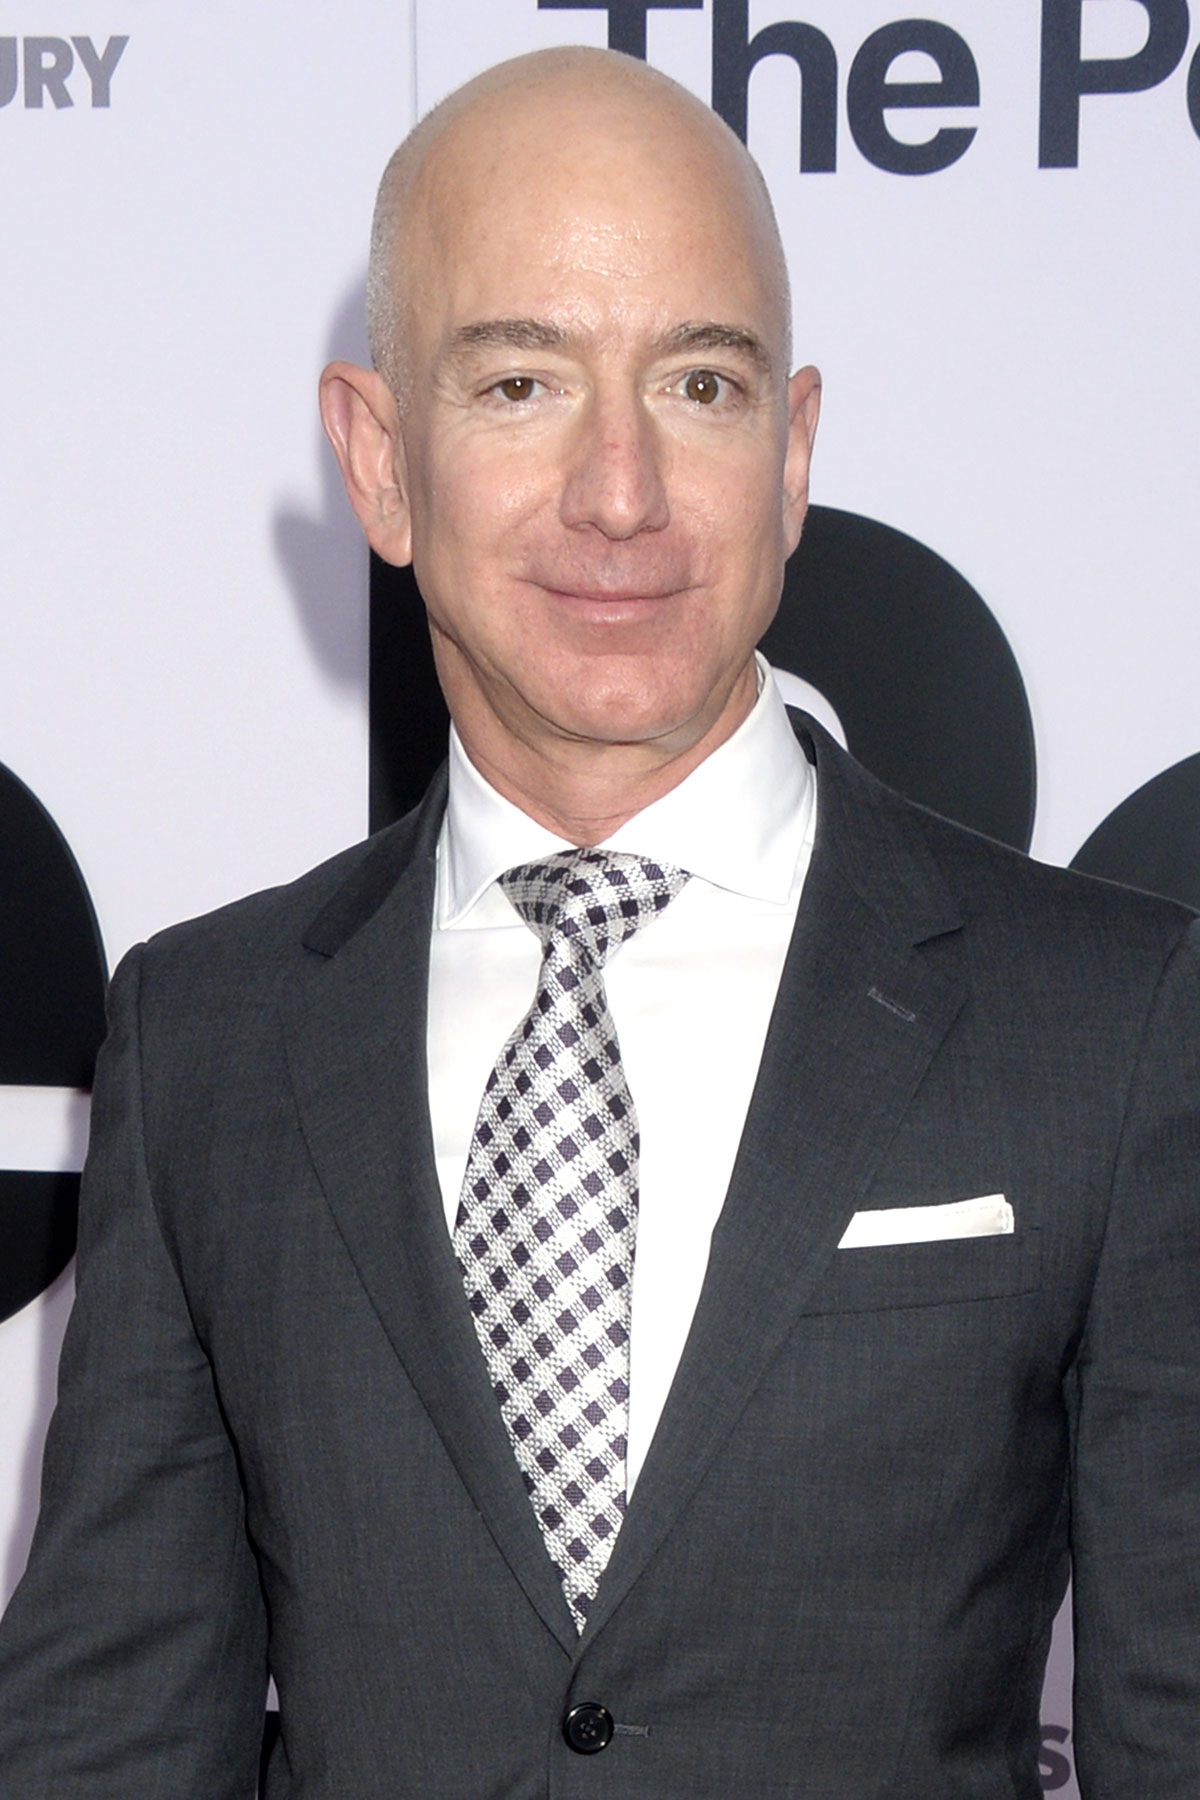 Jeff Bezos Calls Out National Enquirer for Attempted